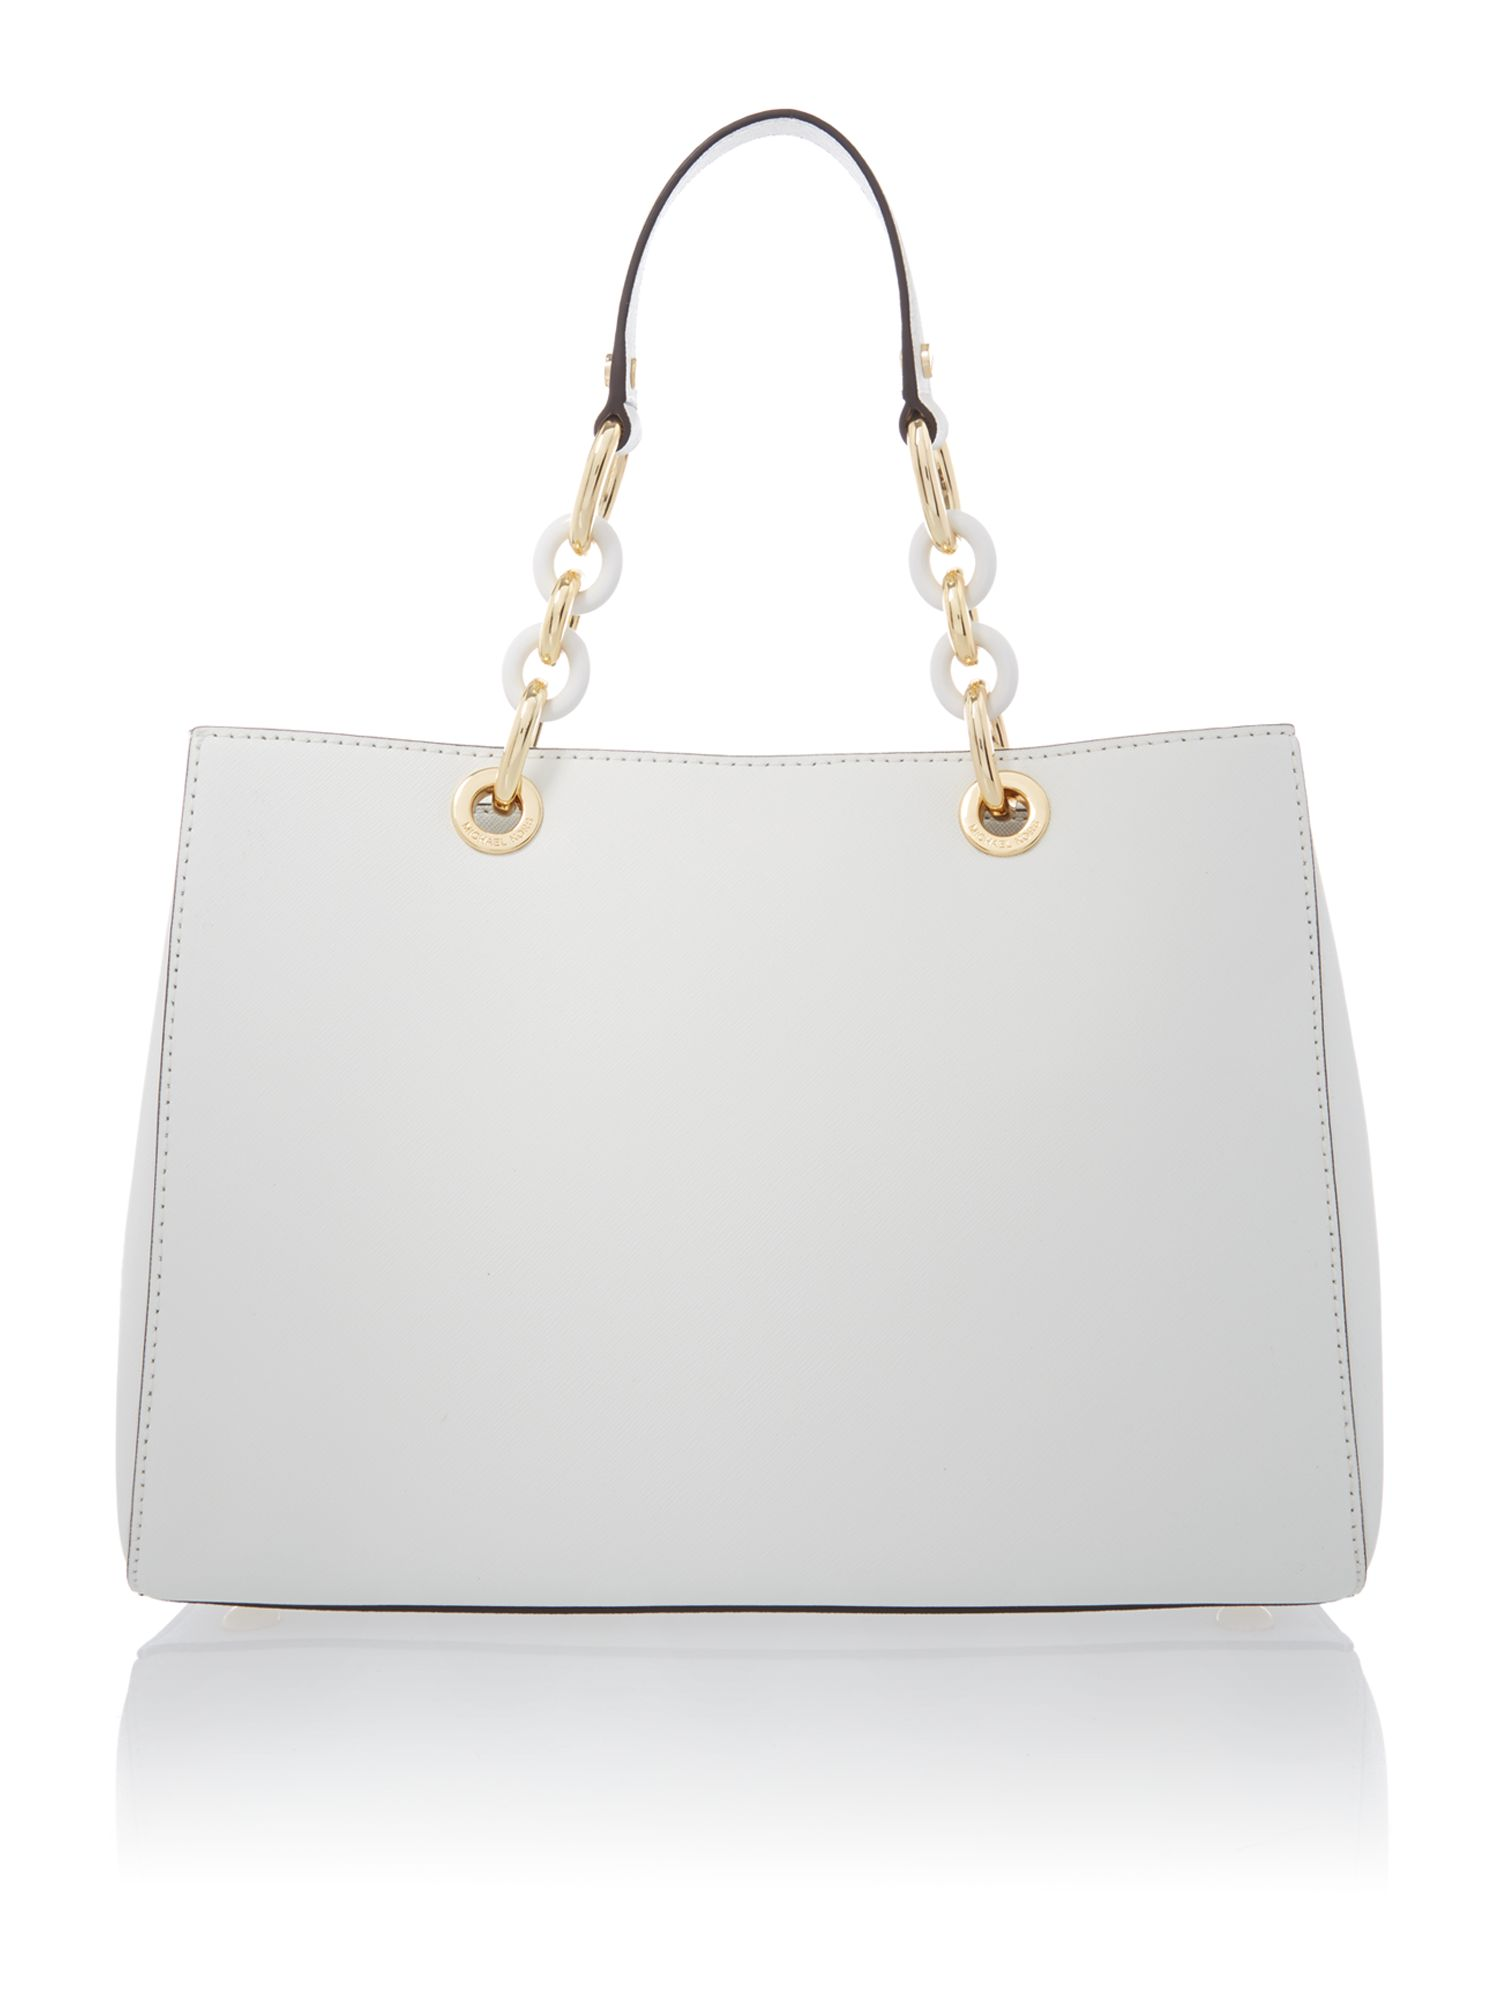 Cynthia white ew tote bag